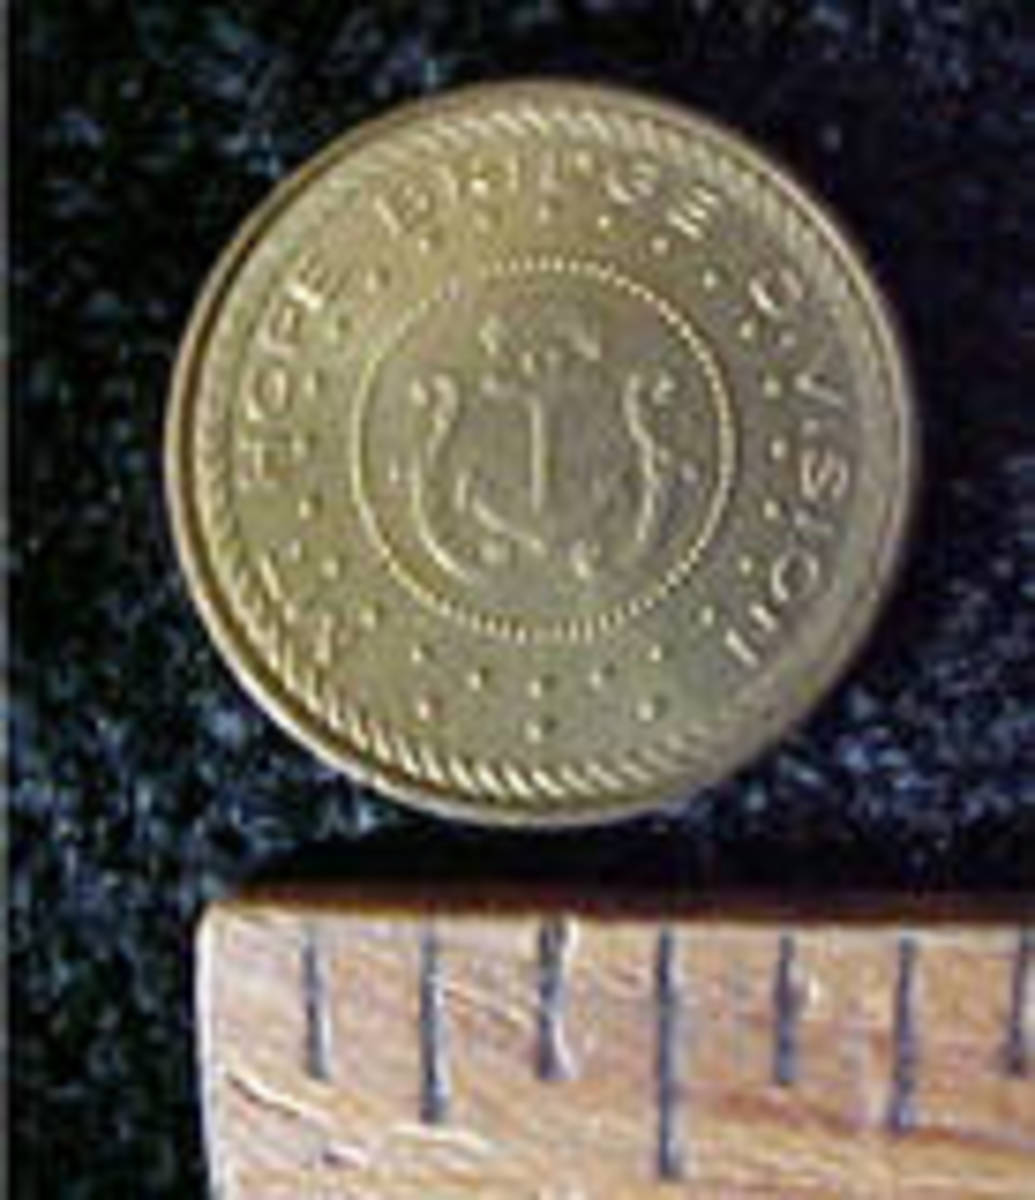 This is an example of a bridge token from Rhode Island. It is no longer a toll road.